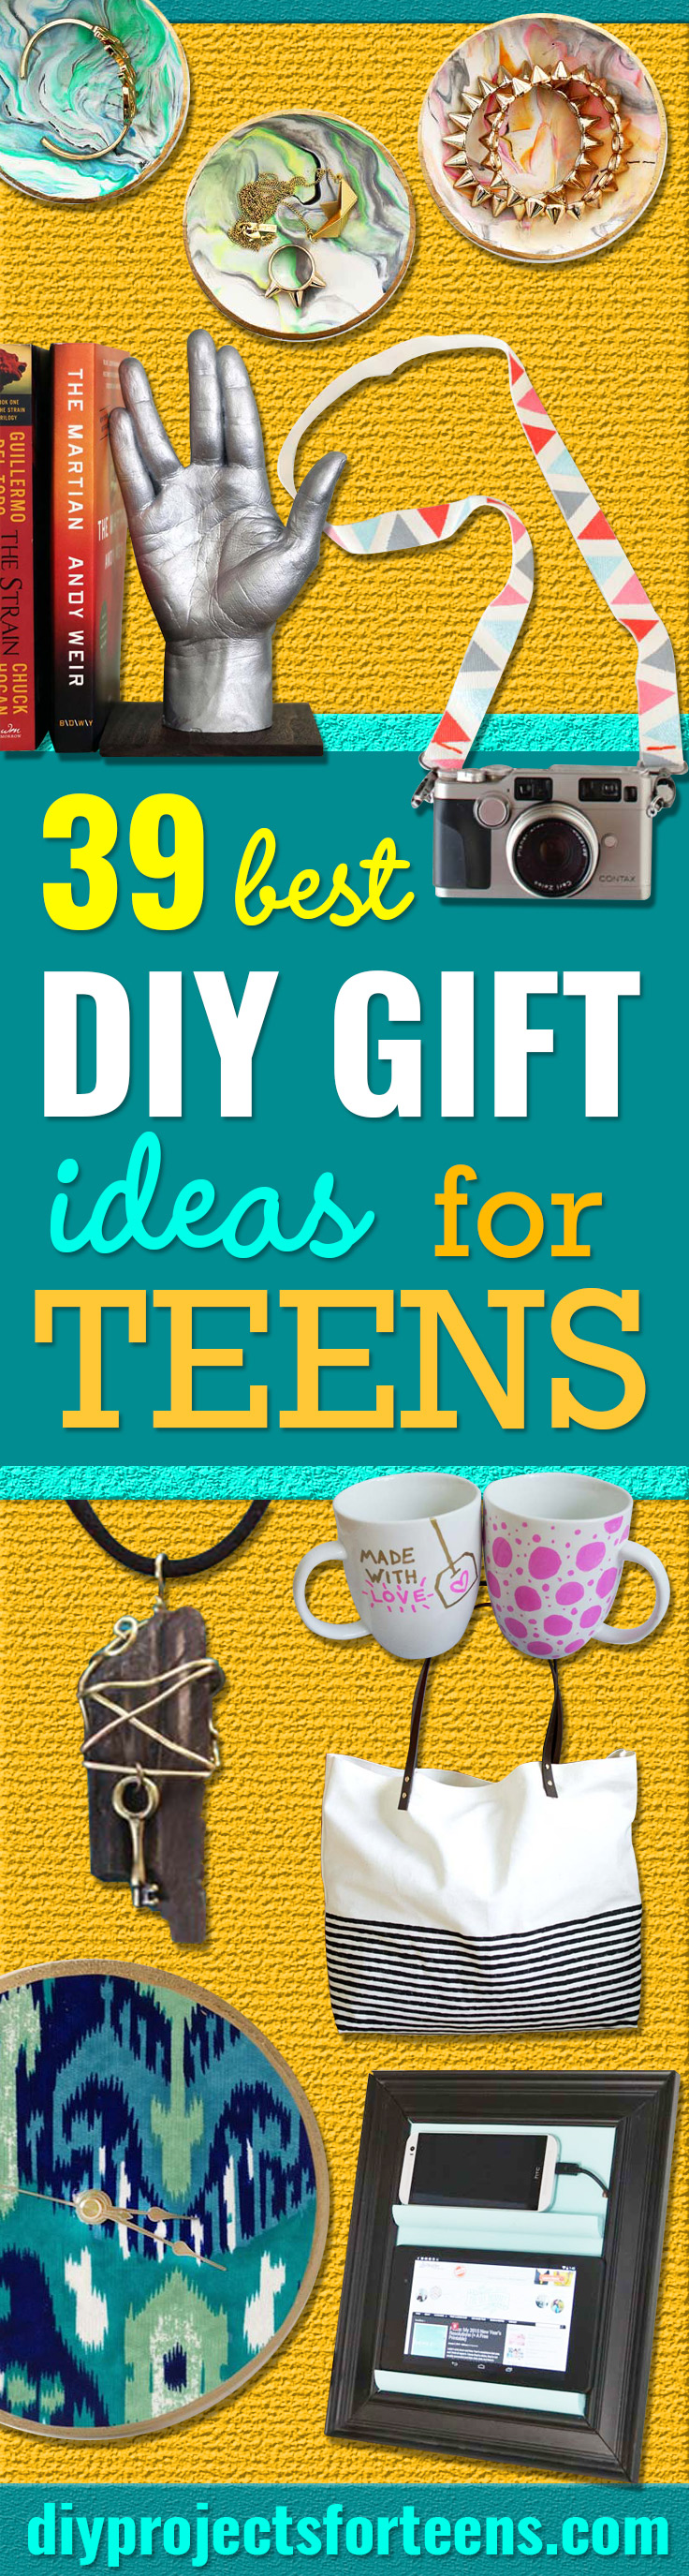 39 Best Diy Gift Ideas For Teens